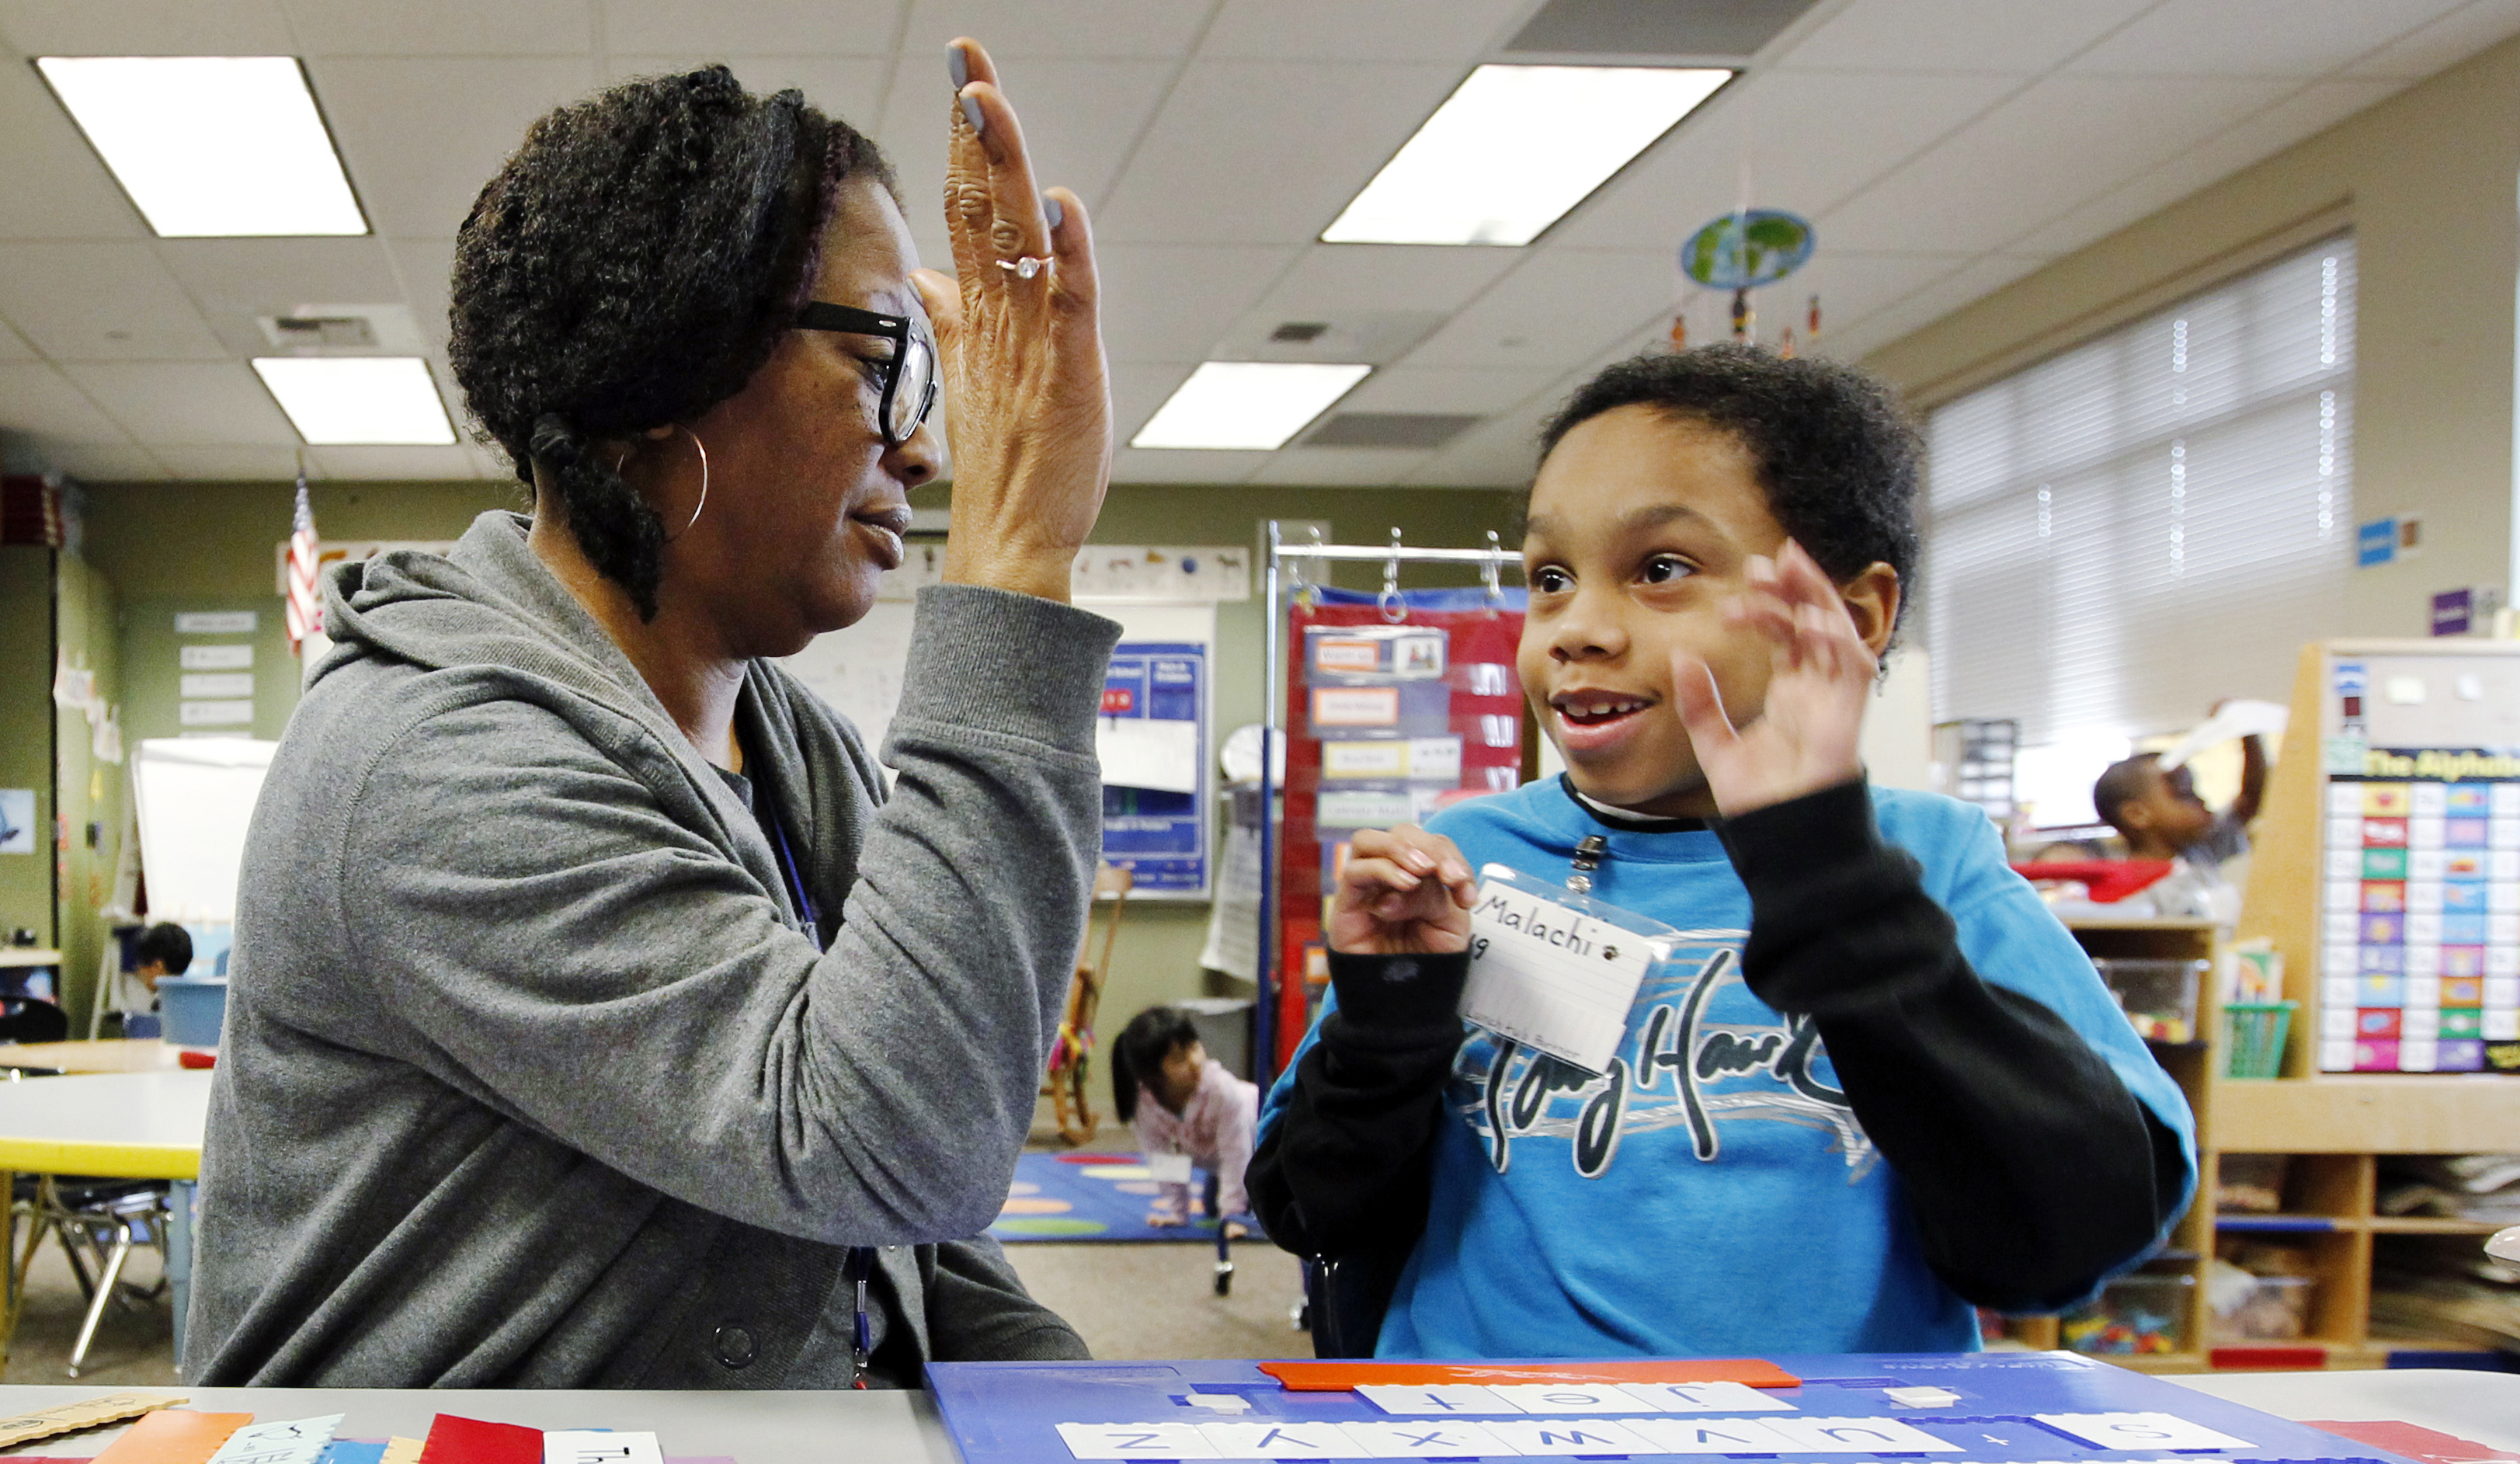 Teacher and student high five